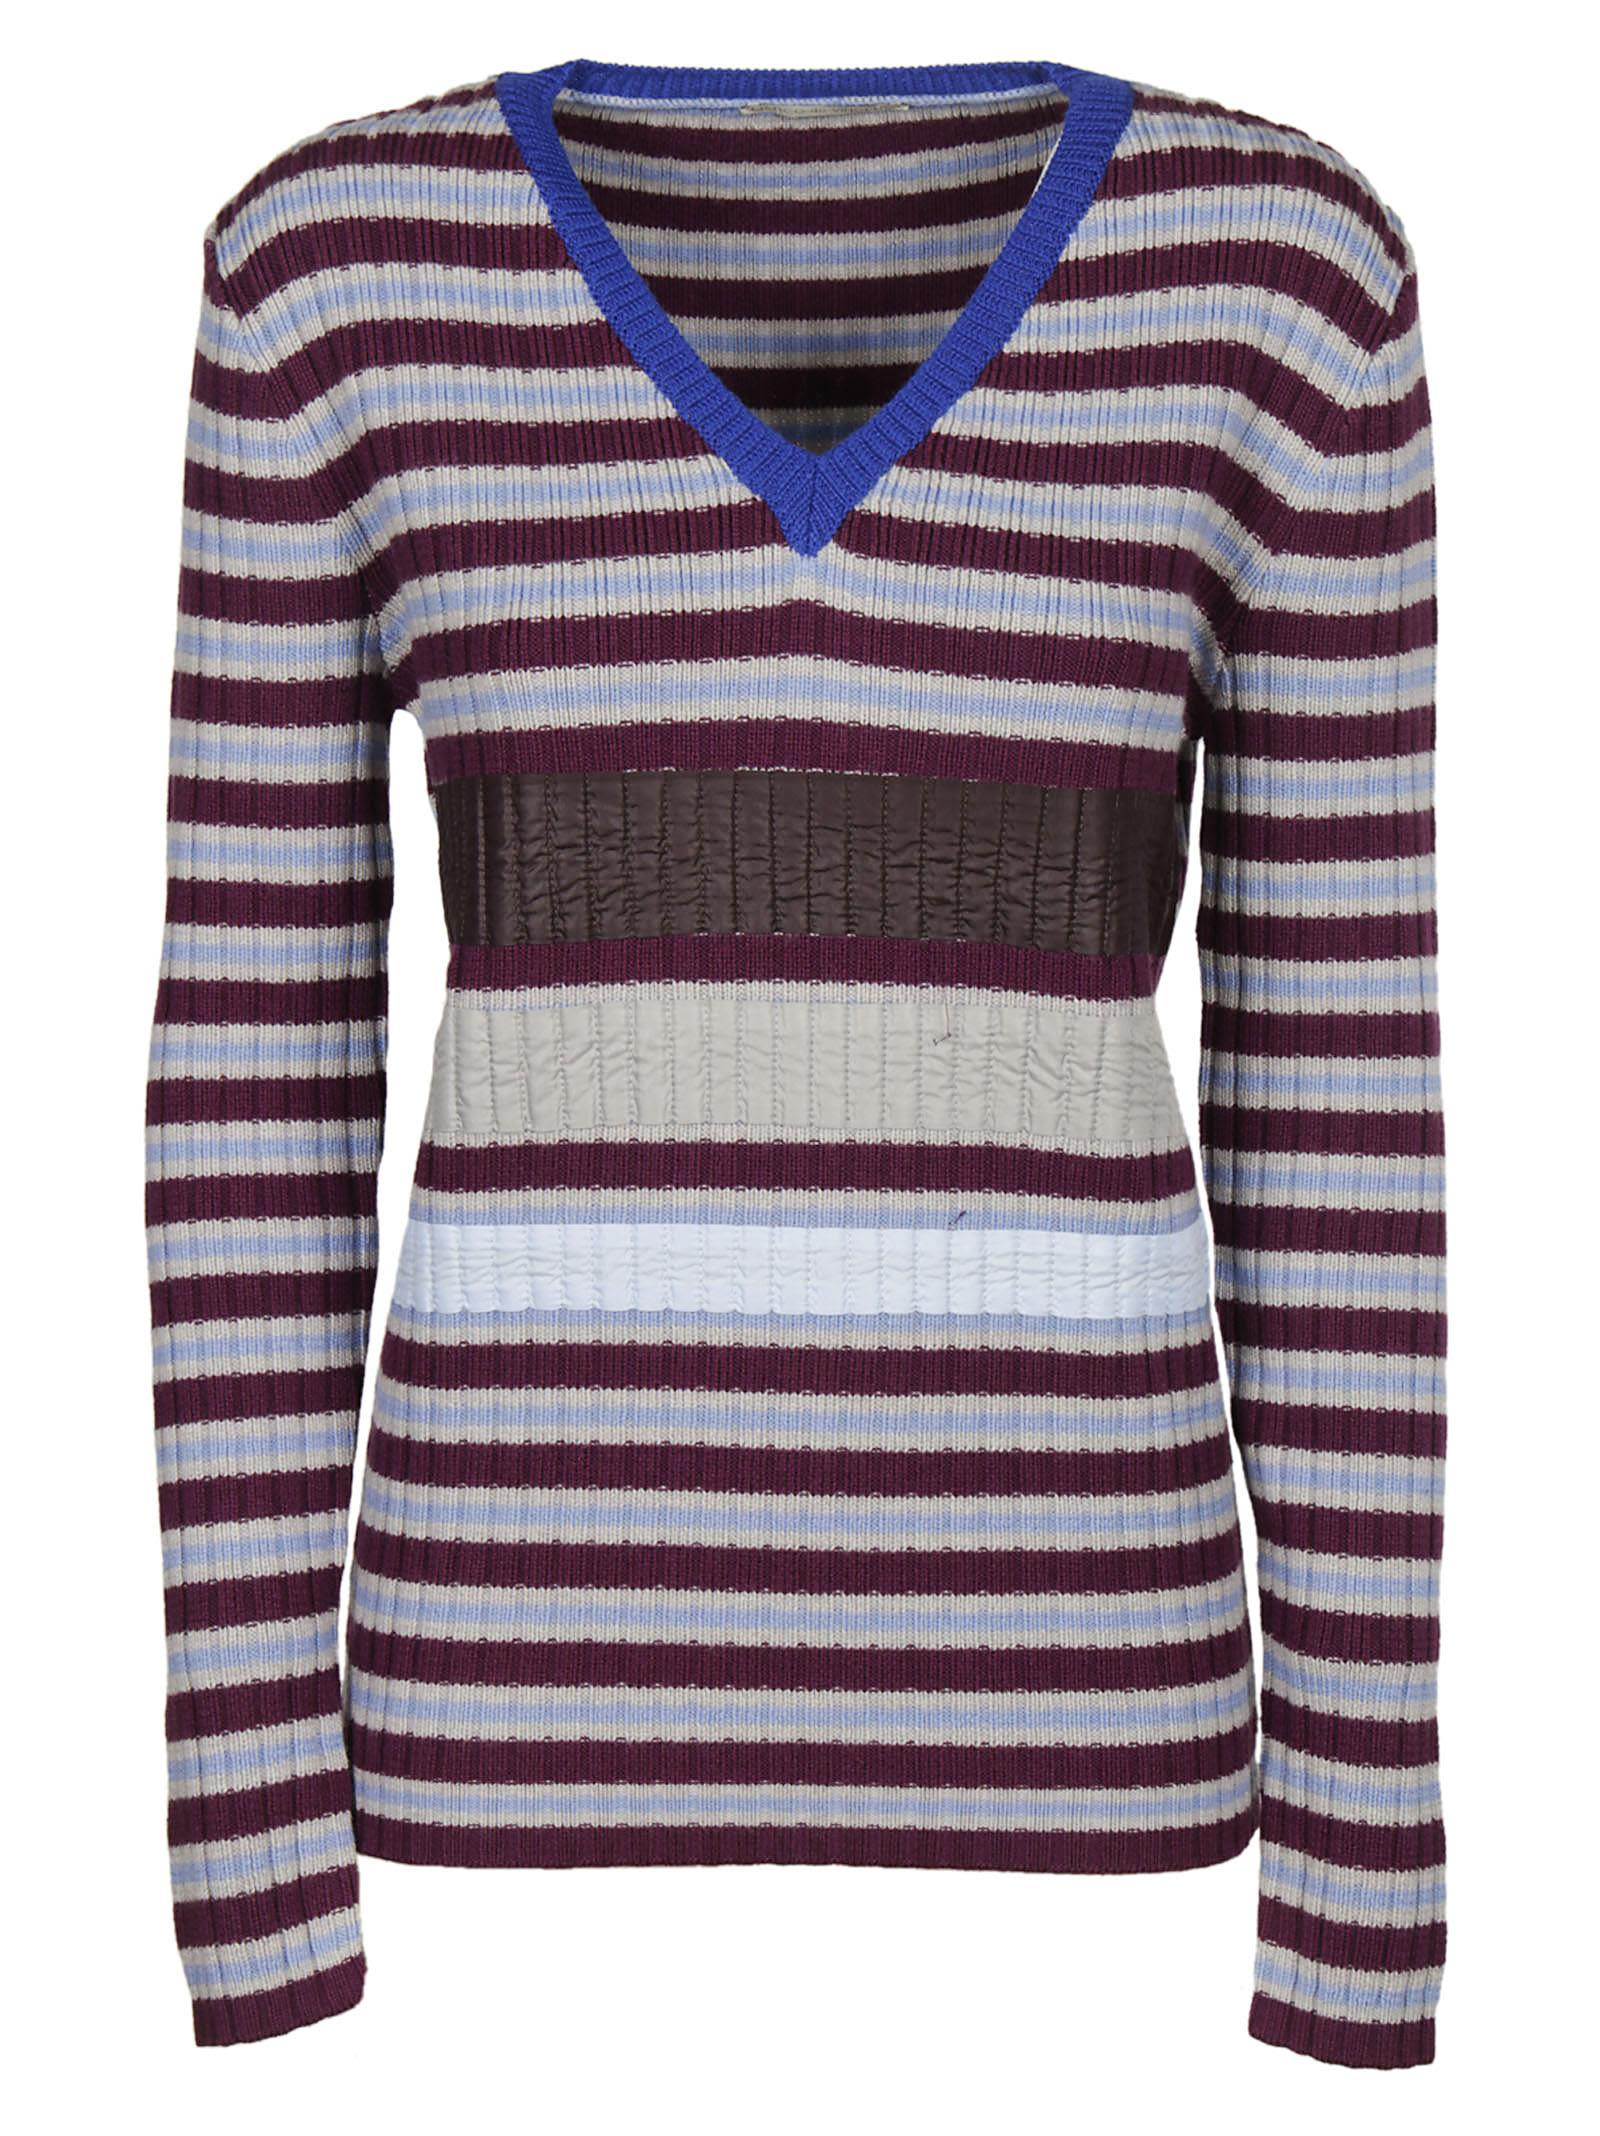 Marco De Vincenzo Stripe Jumper